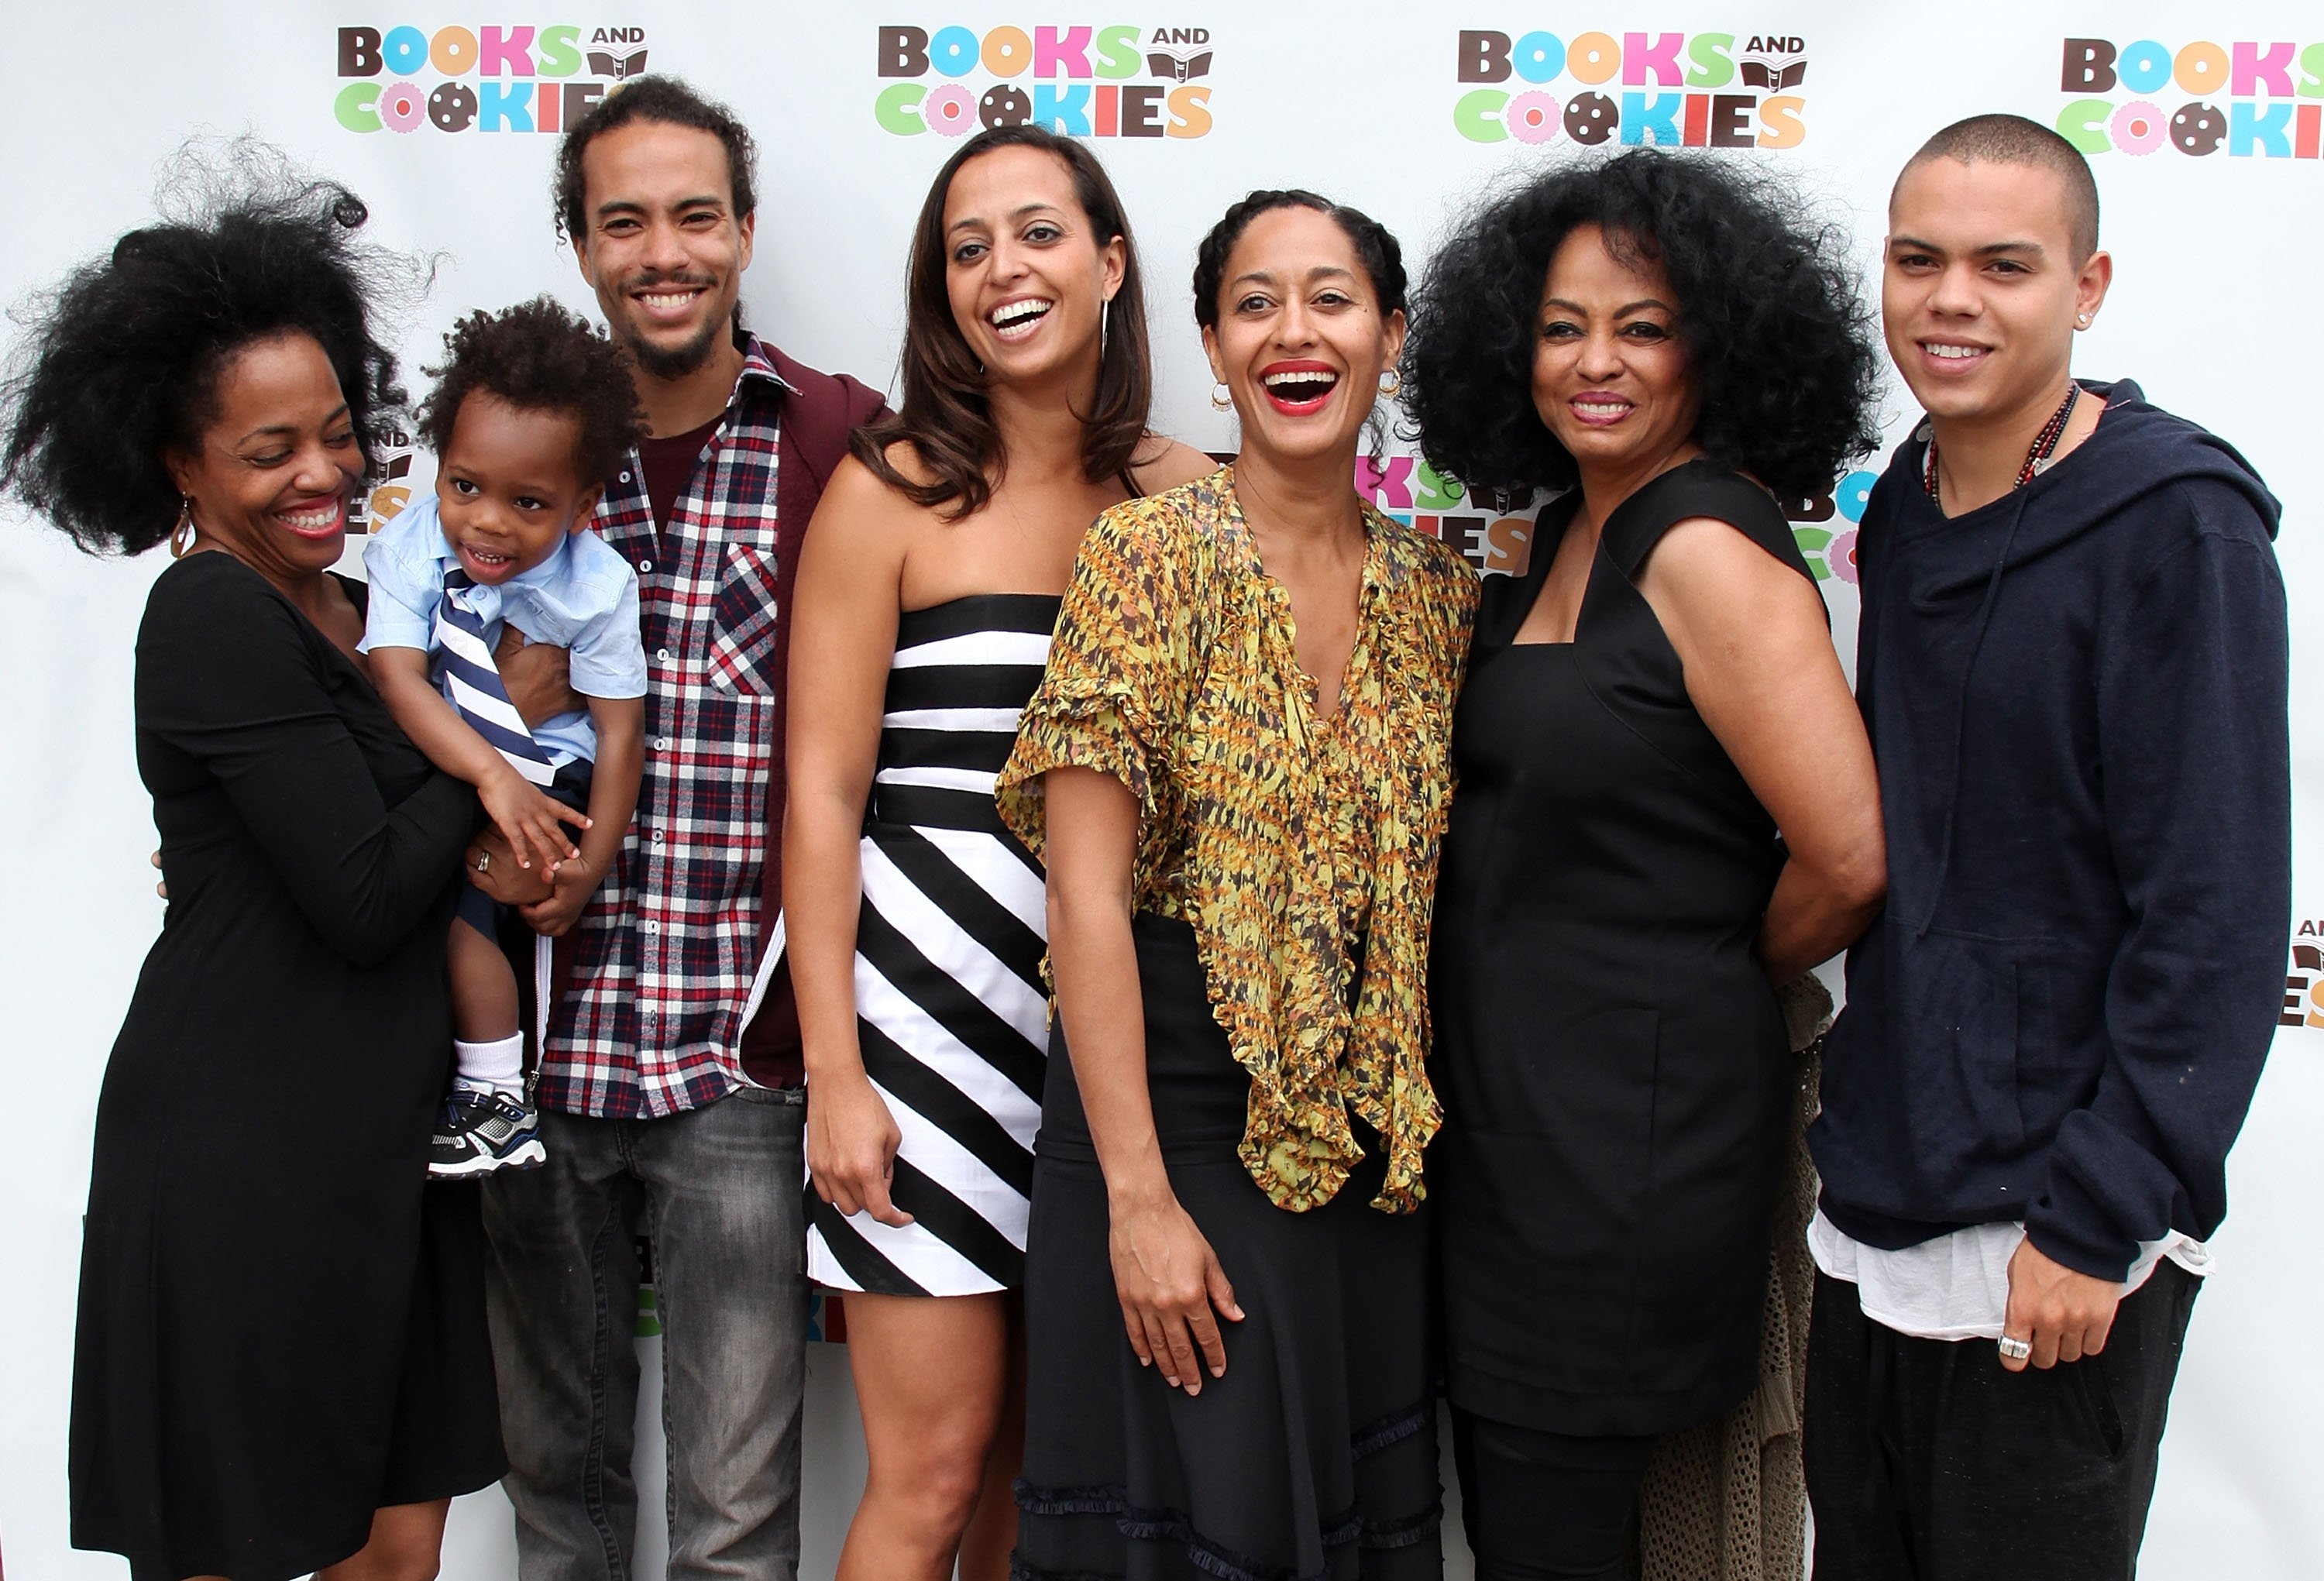 Rhonda Ross Kendrick, Raif Kendrick, Ross Naess, Chudney Ross, Tracee Ellis Ross, Diana Ross and Evan Ross attend the grand opening of Books & Cookies on May 14, 2011 in Santa Monica, California   Photo: Getty Images